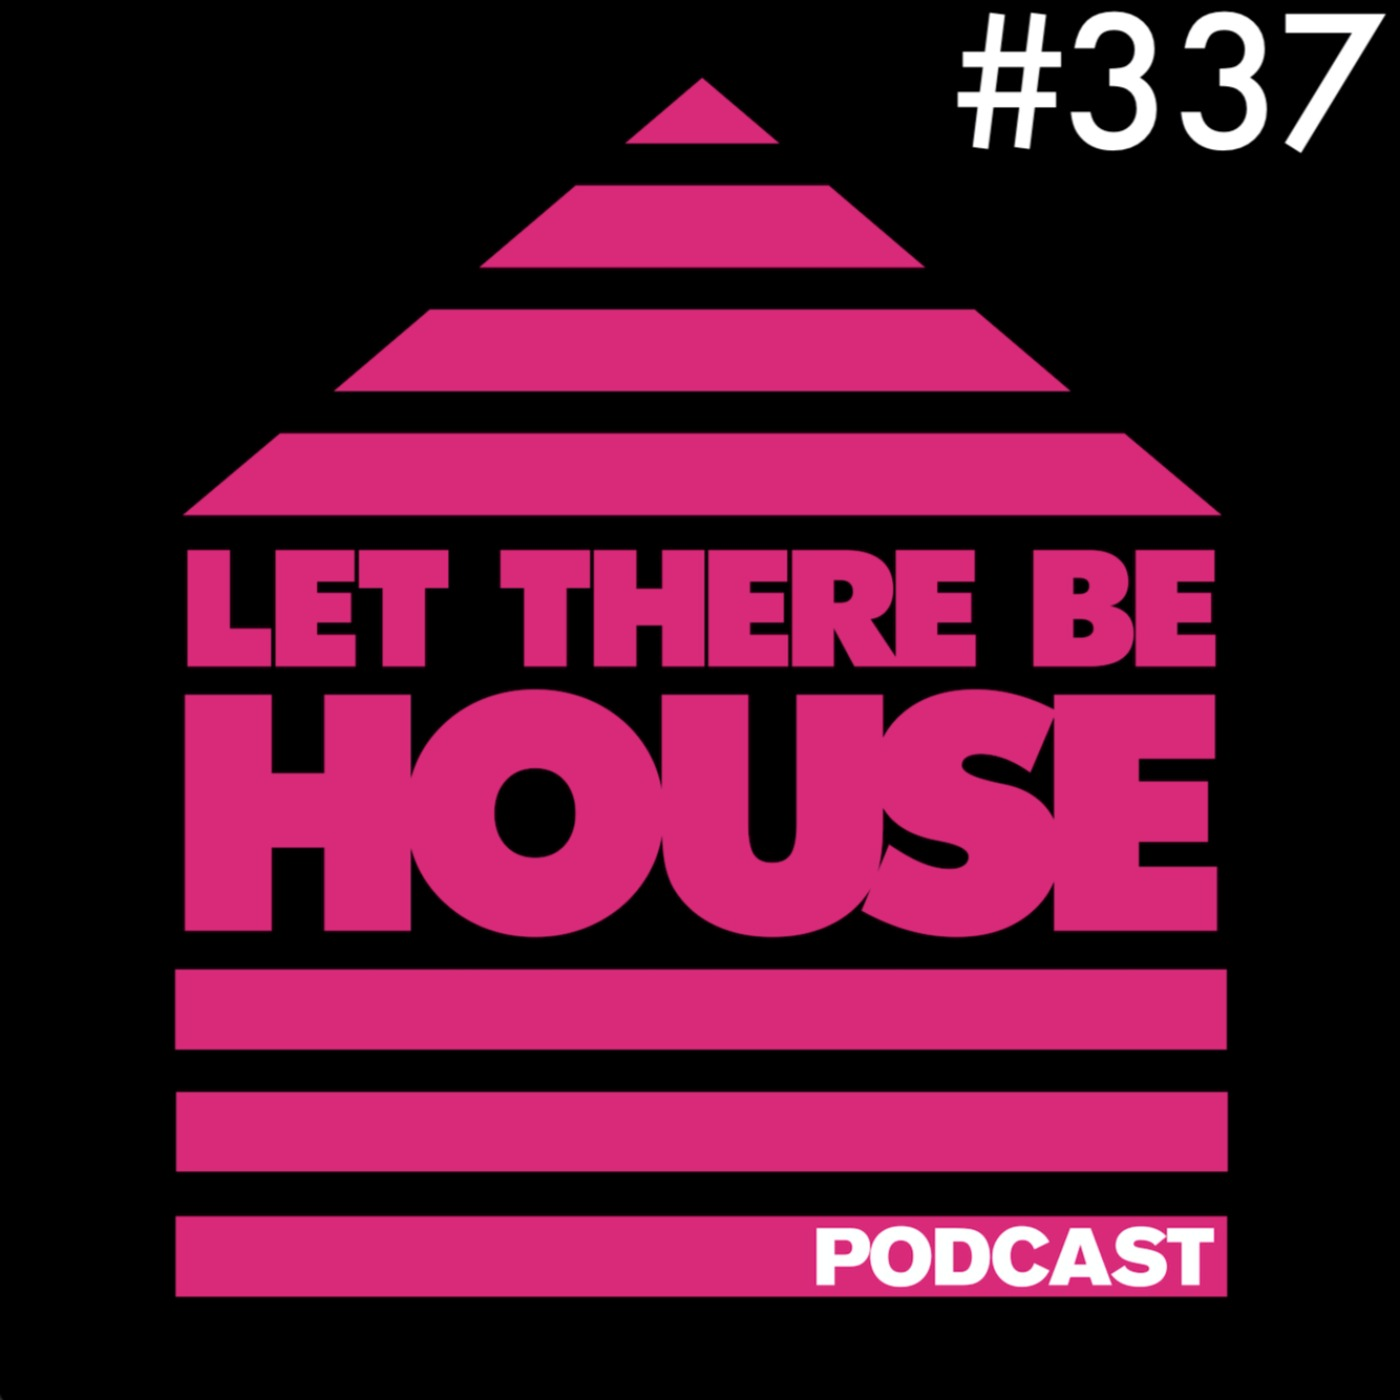 LTBH #337 with Queen B